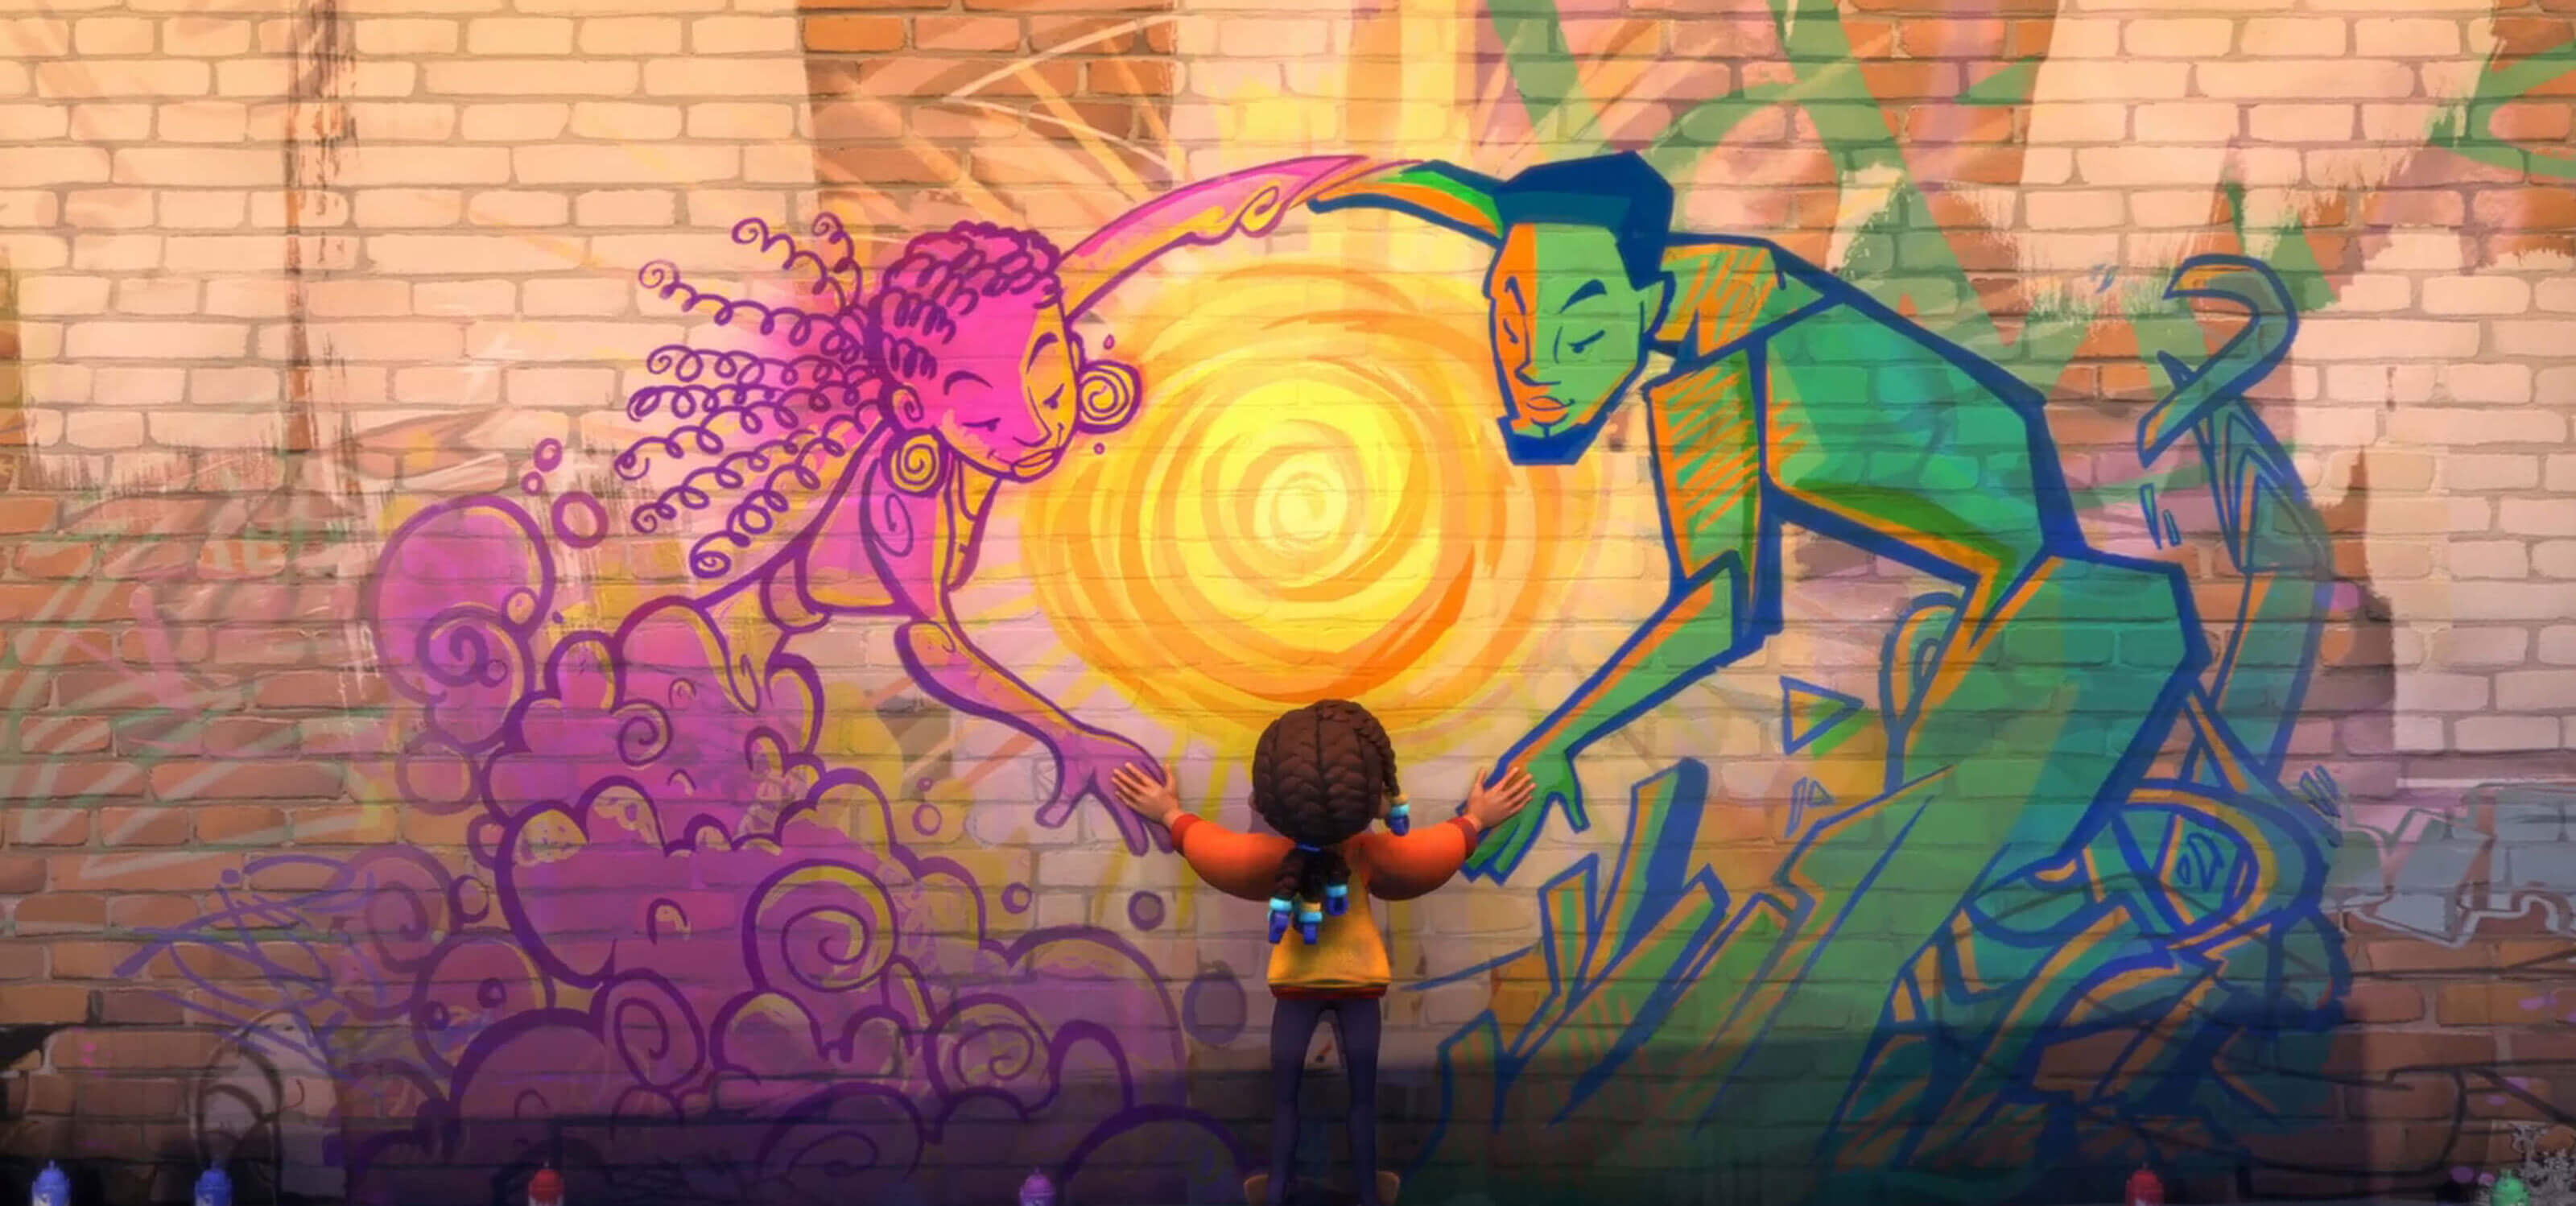 A girl facing a brick wall spray-painted with two figures, one pink, one green, holding hands around a bright sun.